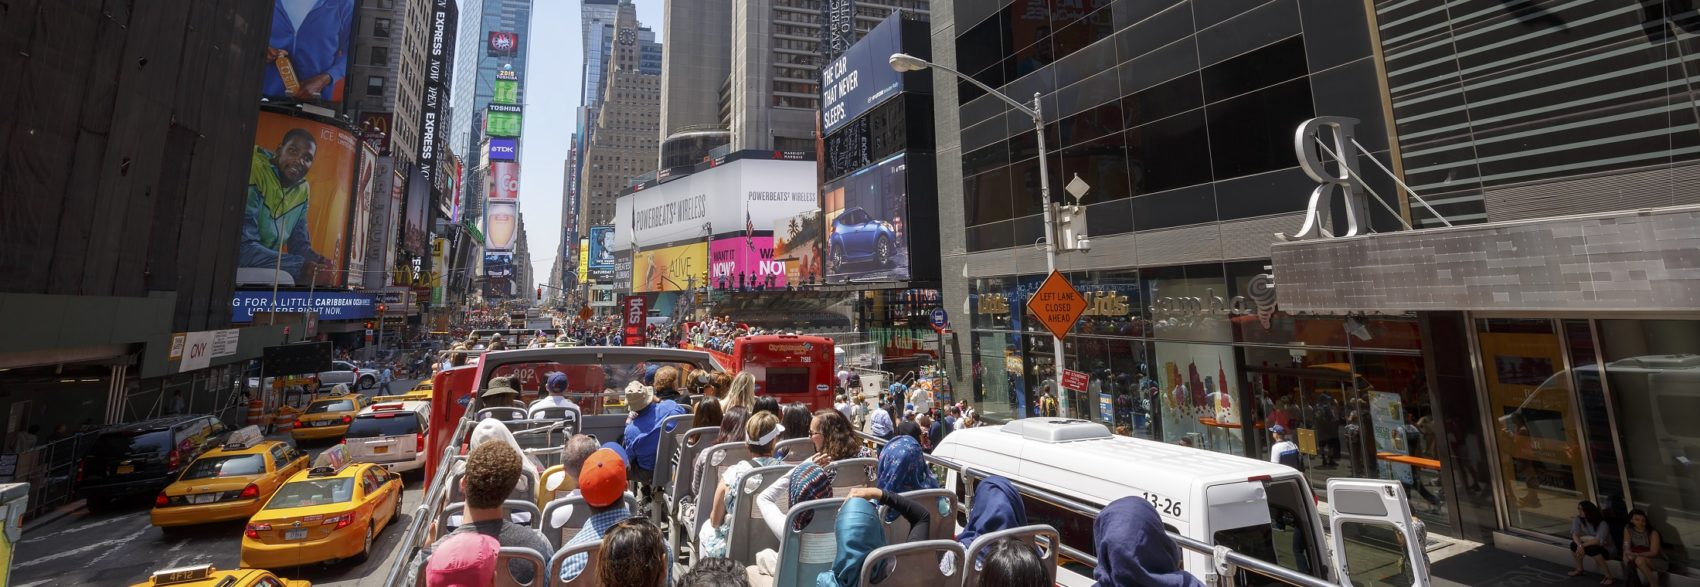 Times Square with tourists in bus, New York City, USA